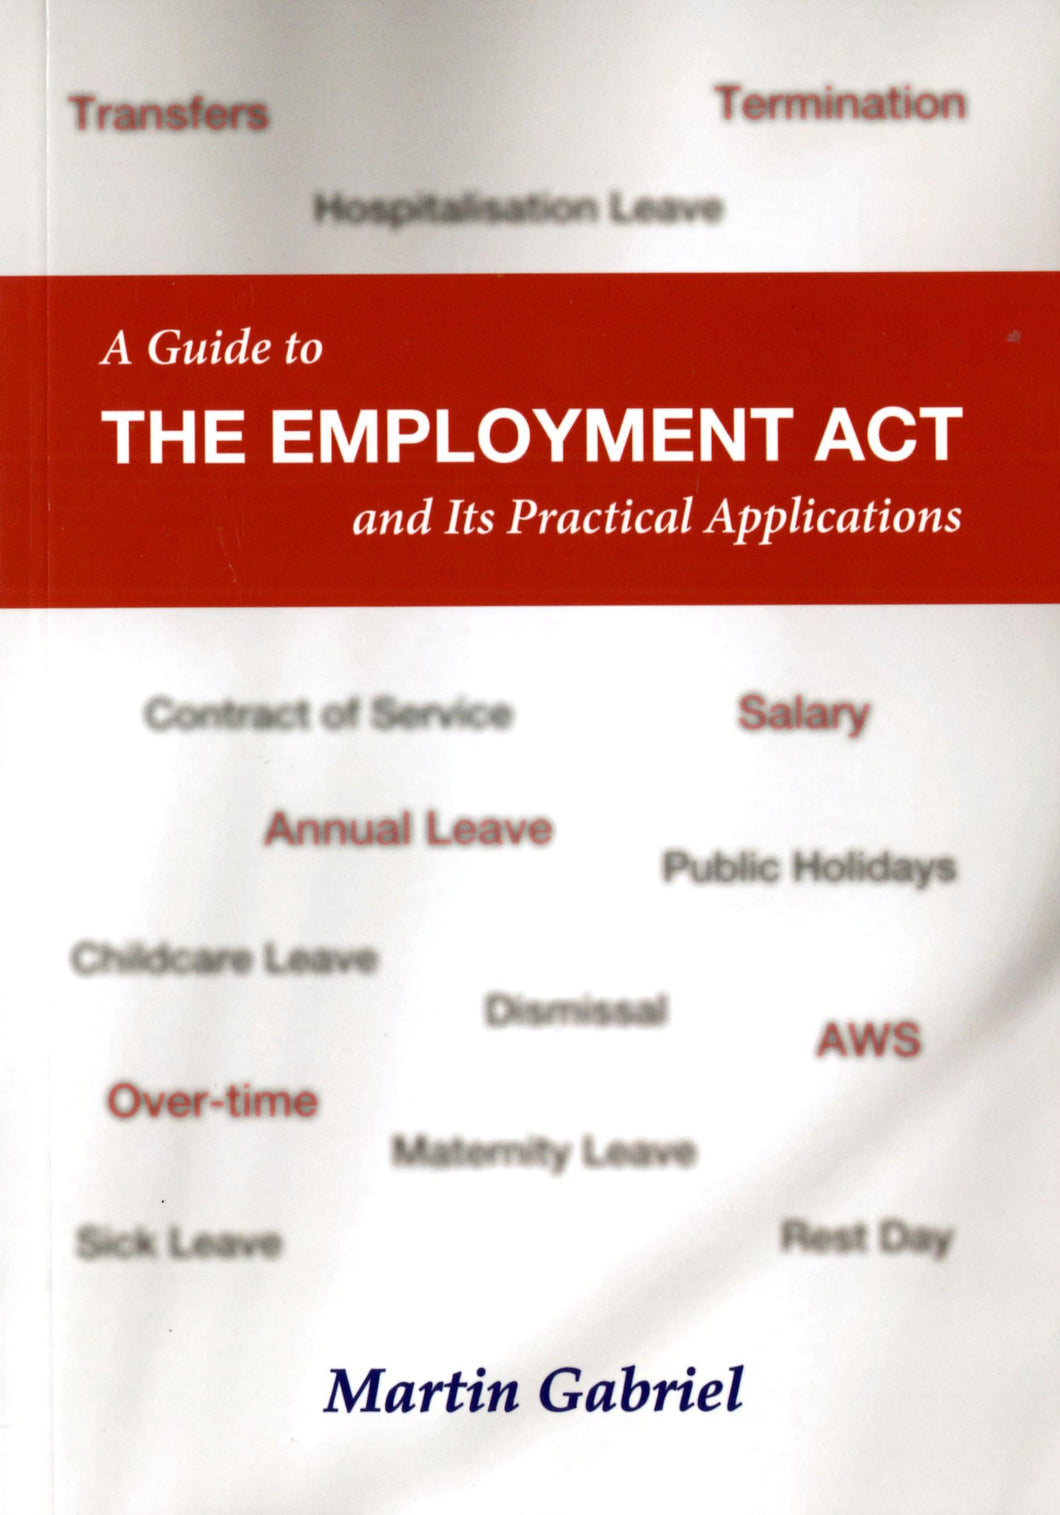 A Guide to the Employment Act and Its Practical Applications - Ethos Books